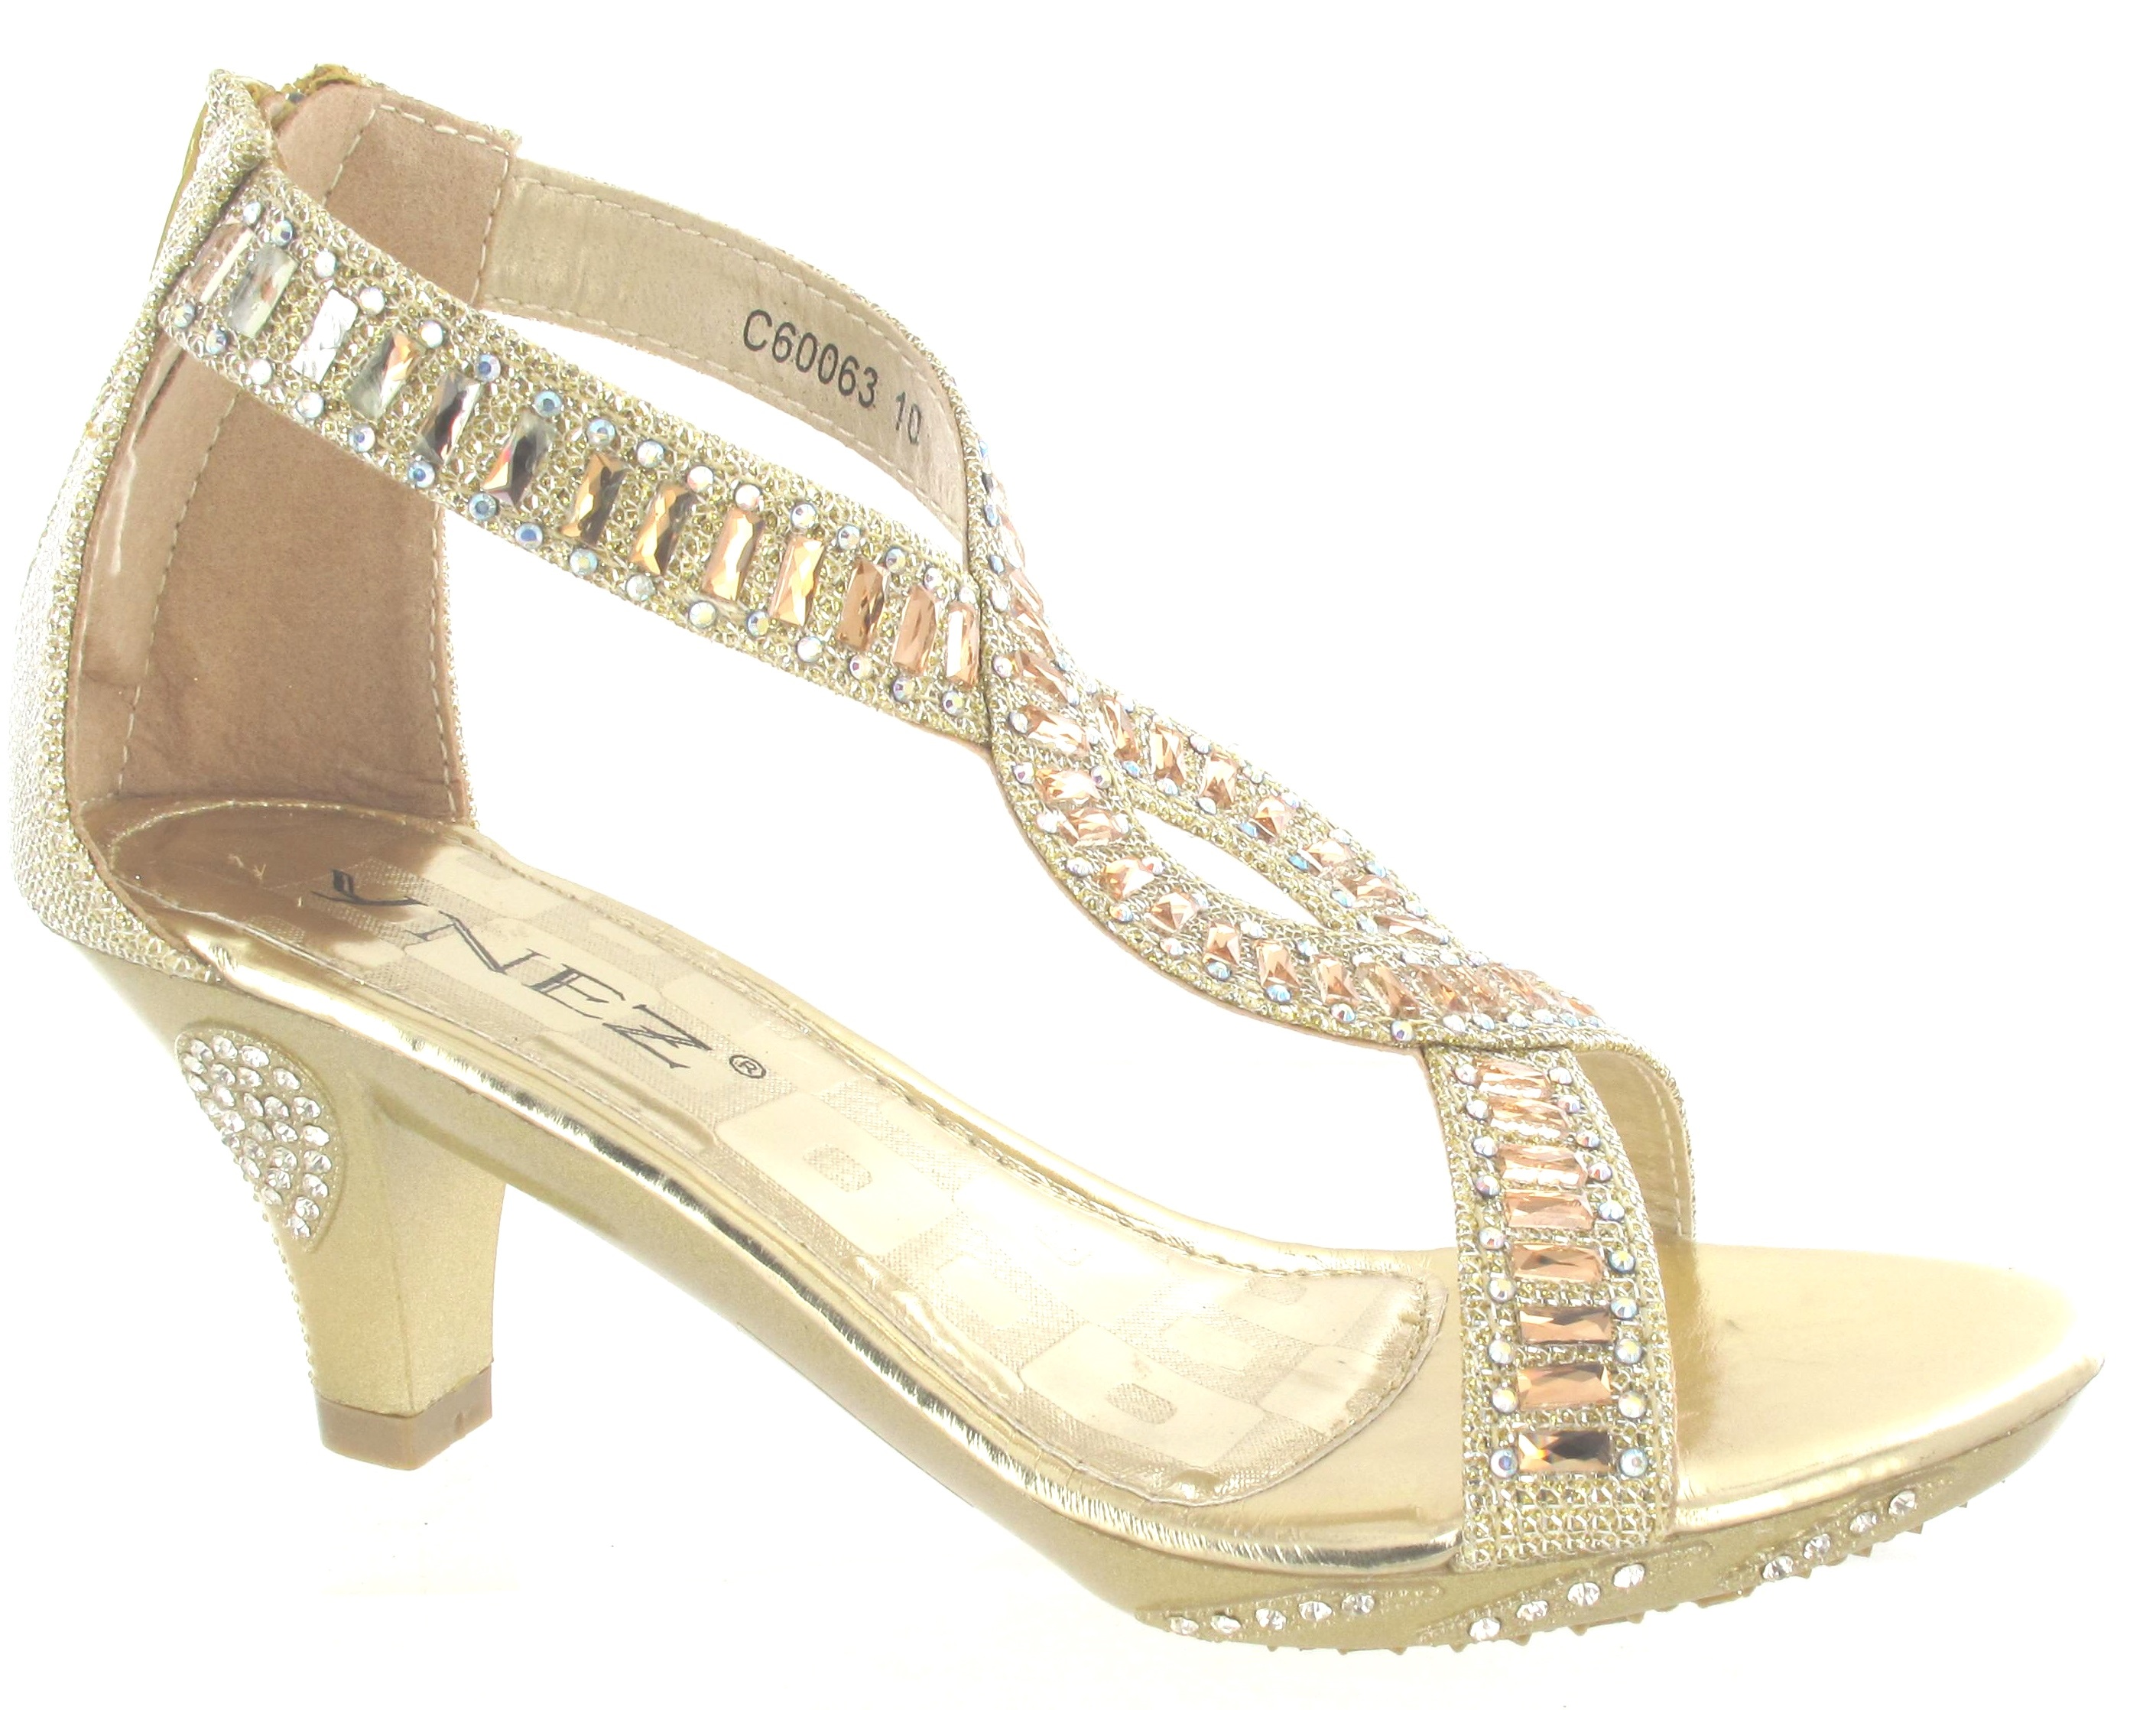 Gold Party Heels - Is Heel